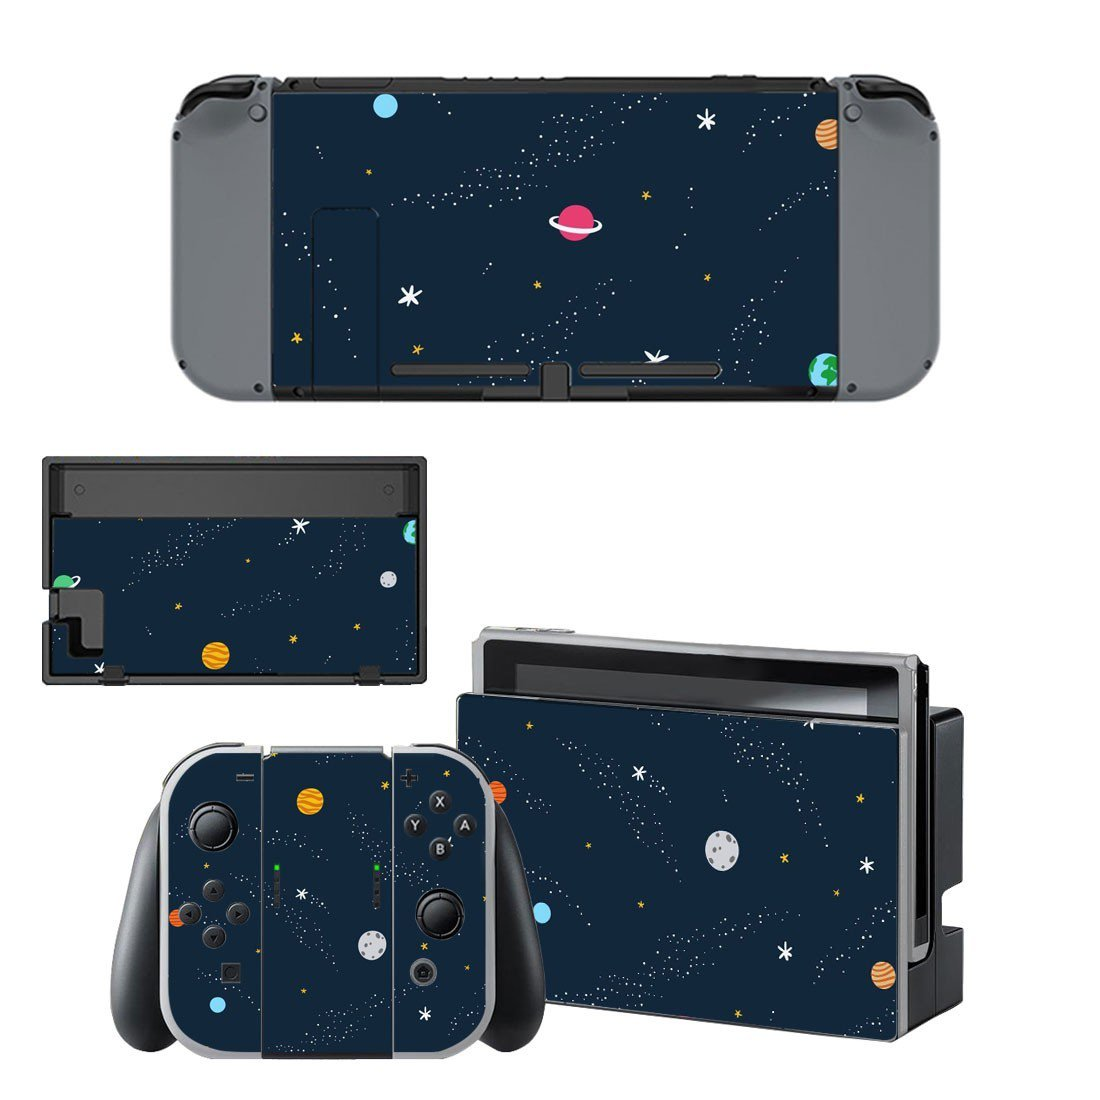 Space Clipart decal skin sticker for Nintendo Switch console and controllers